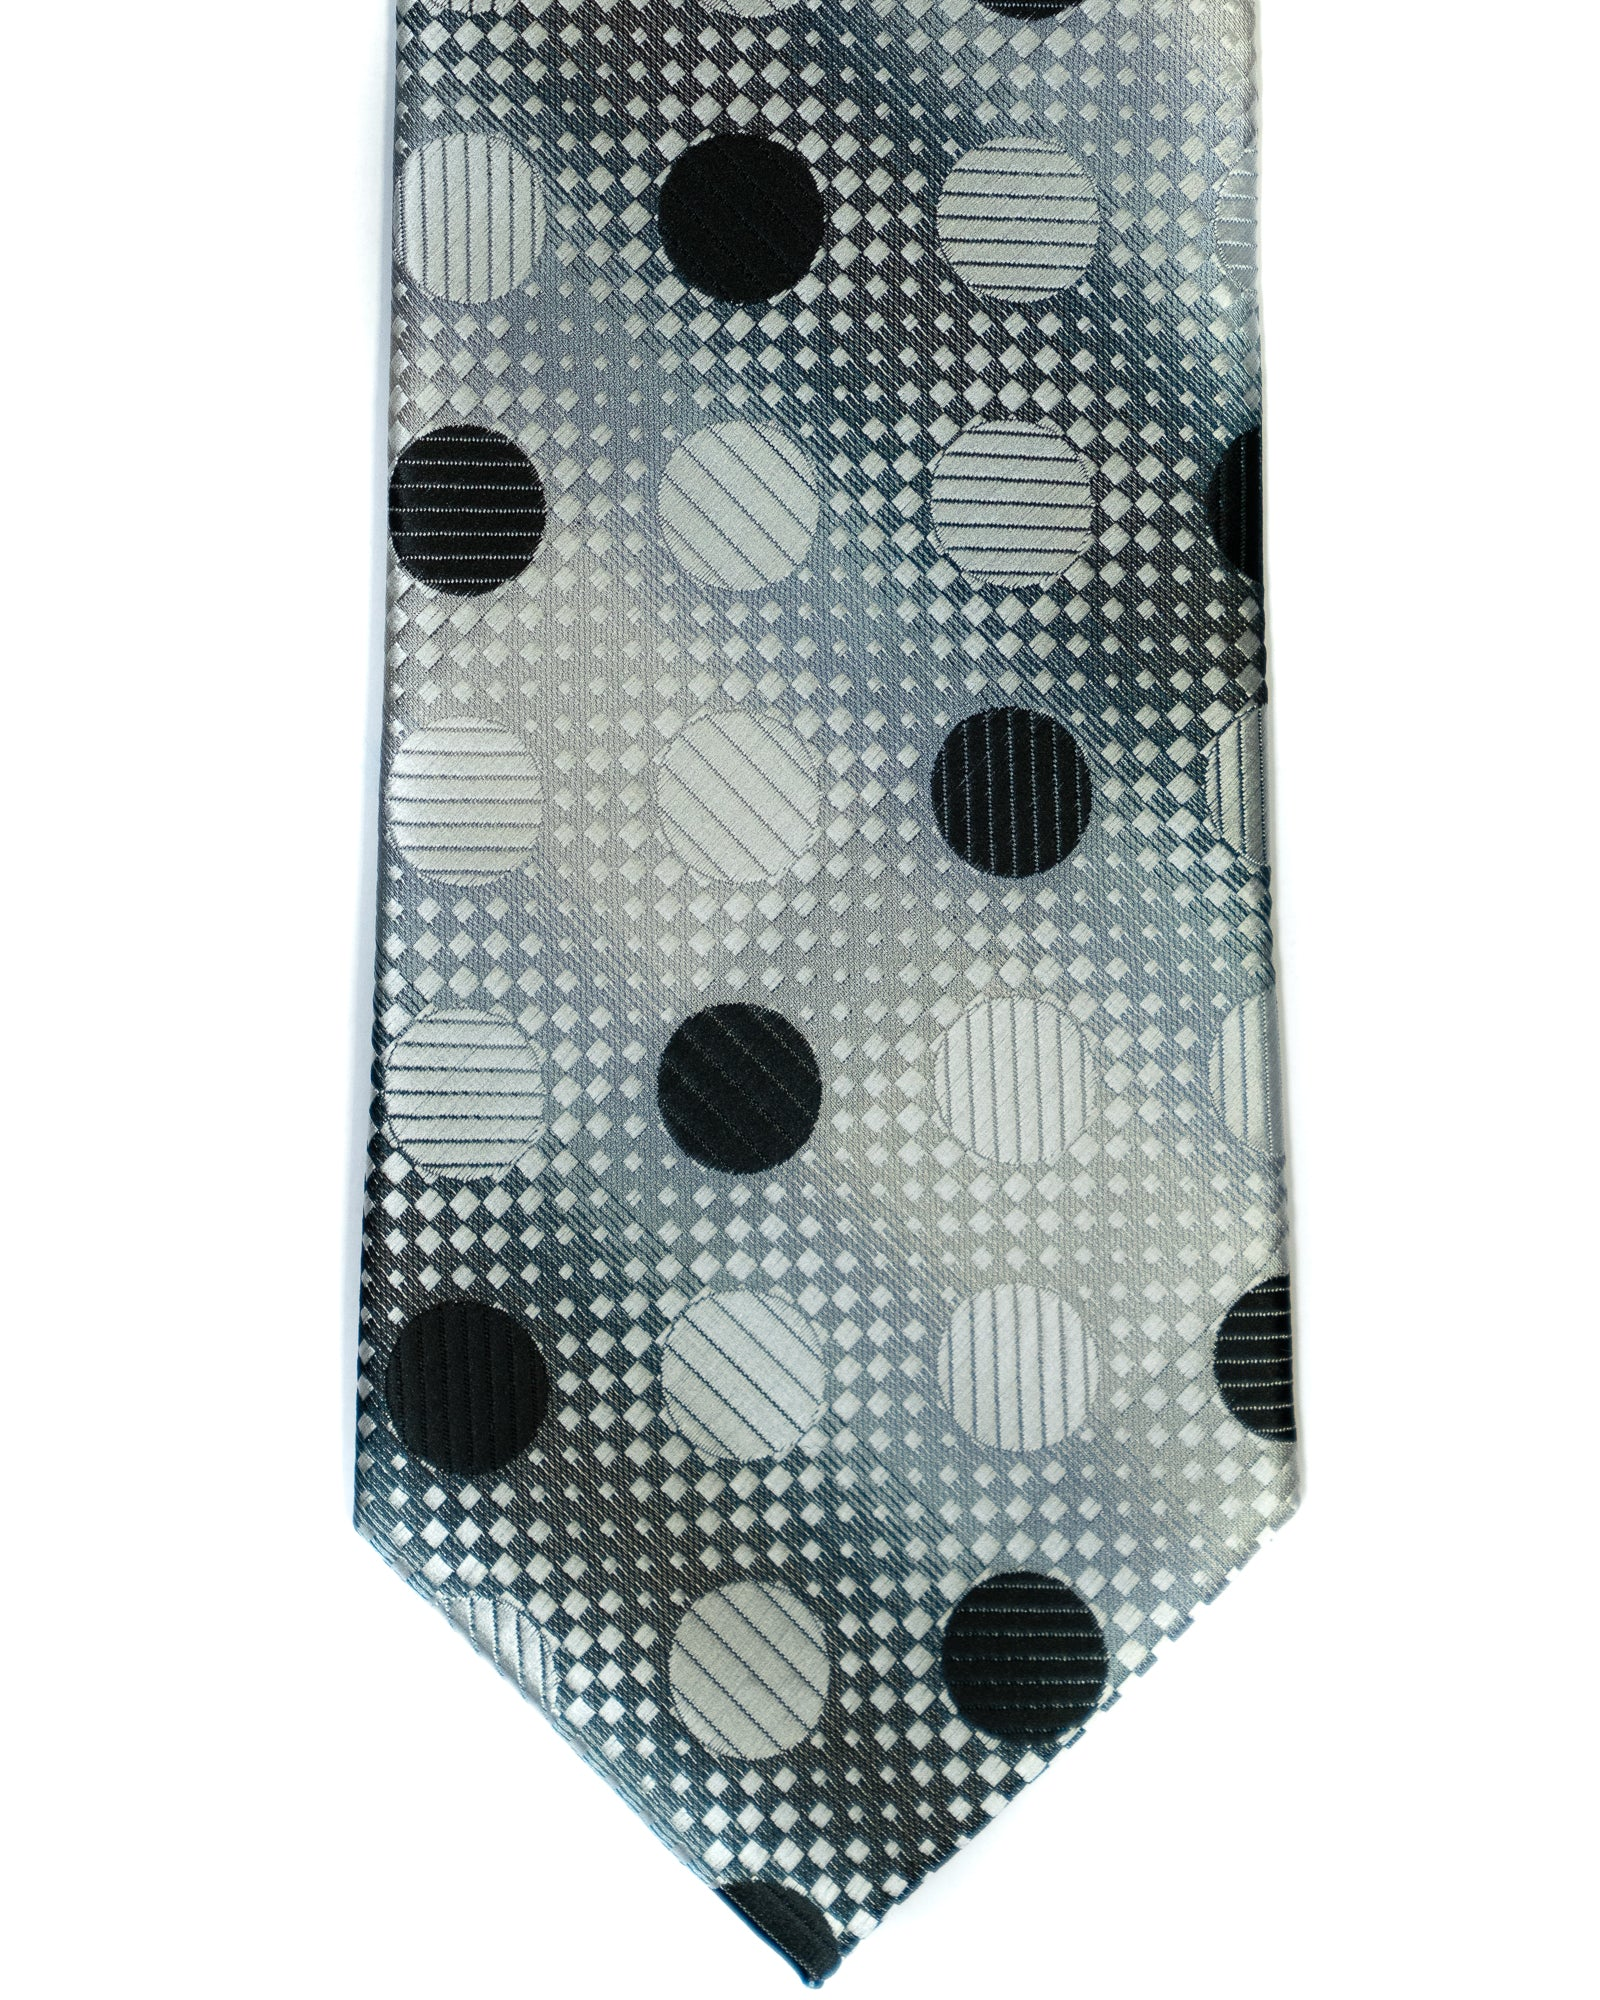 Venturi Uomo Dot Tie in Grey with Black - Rainwater's Men's Clothing and Tuxedo Rental